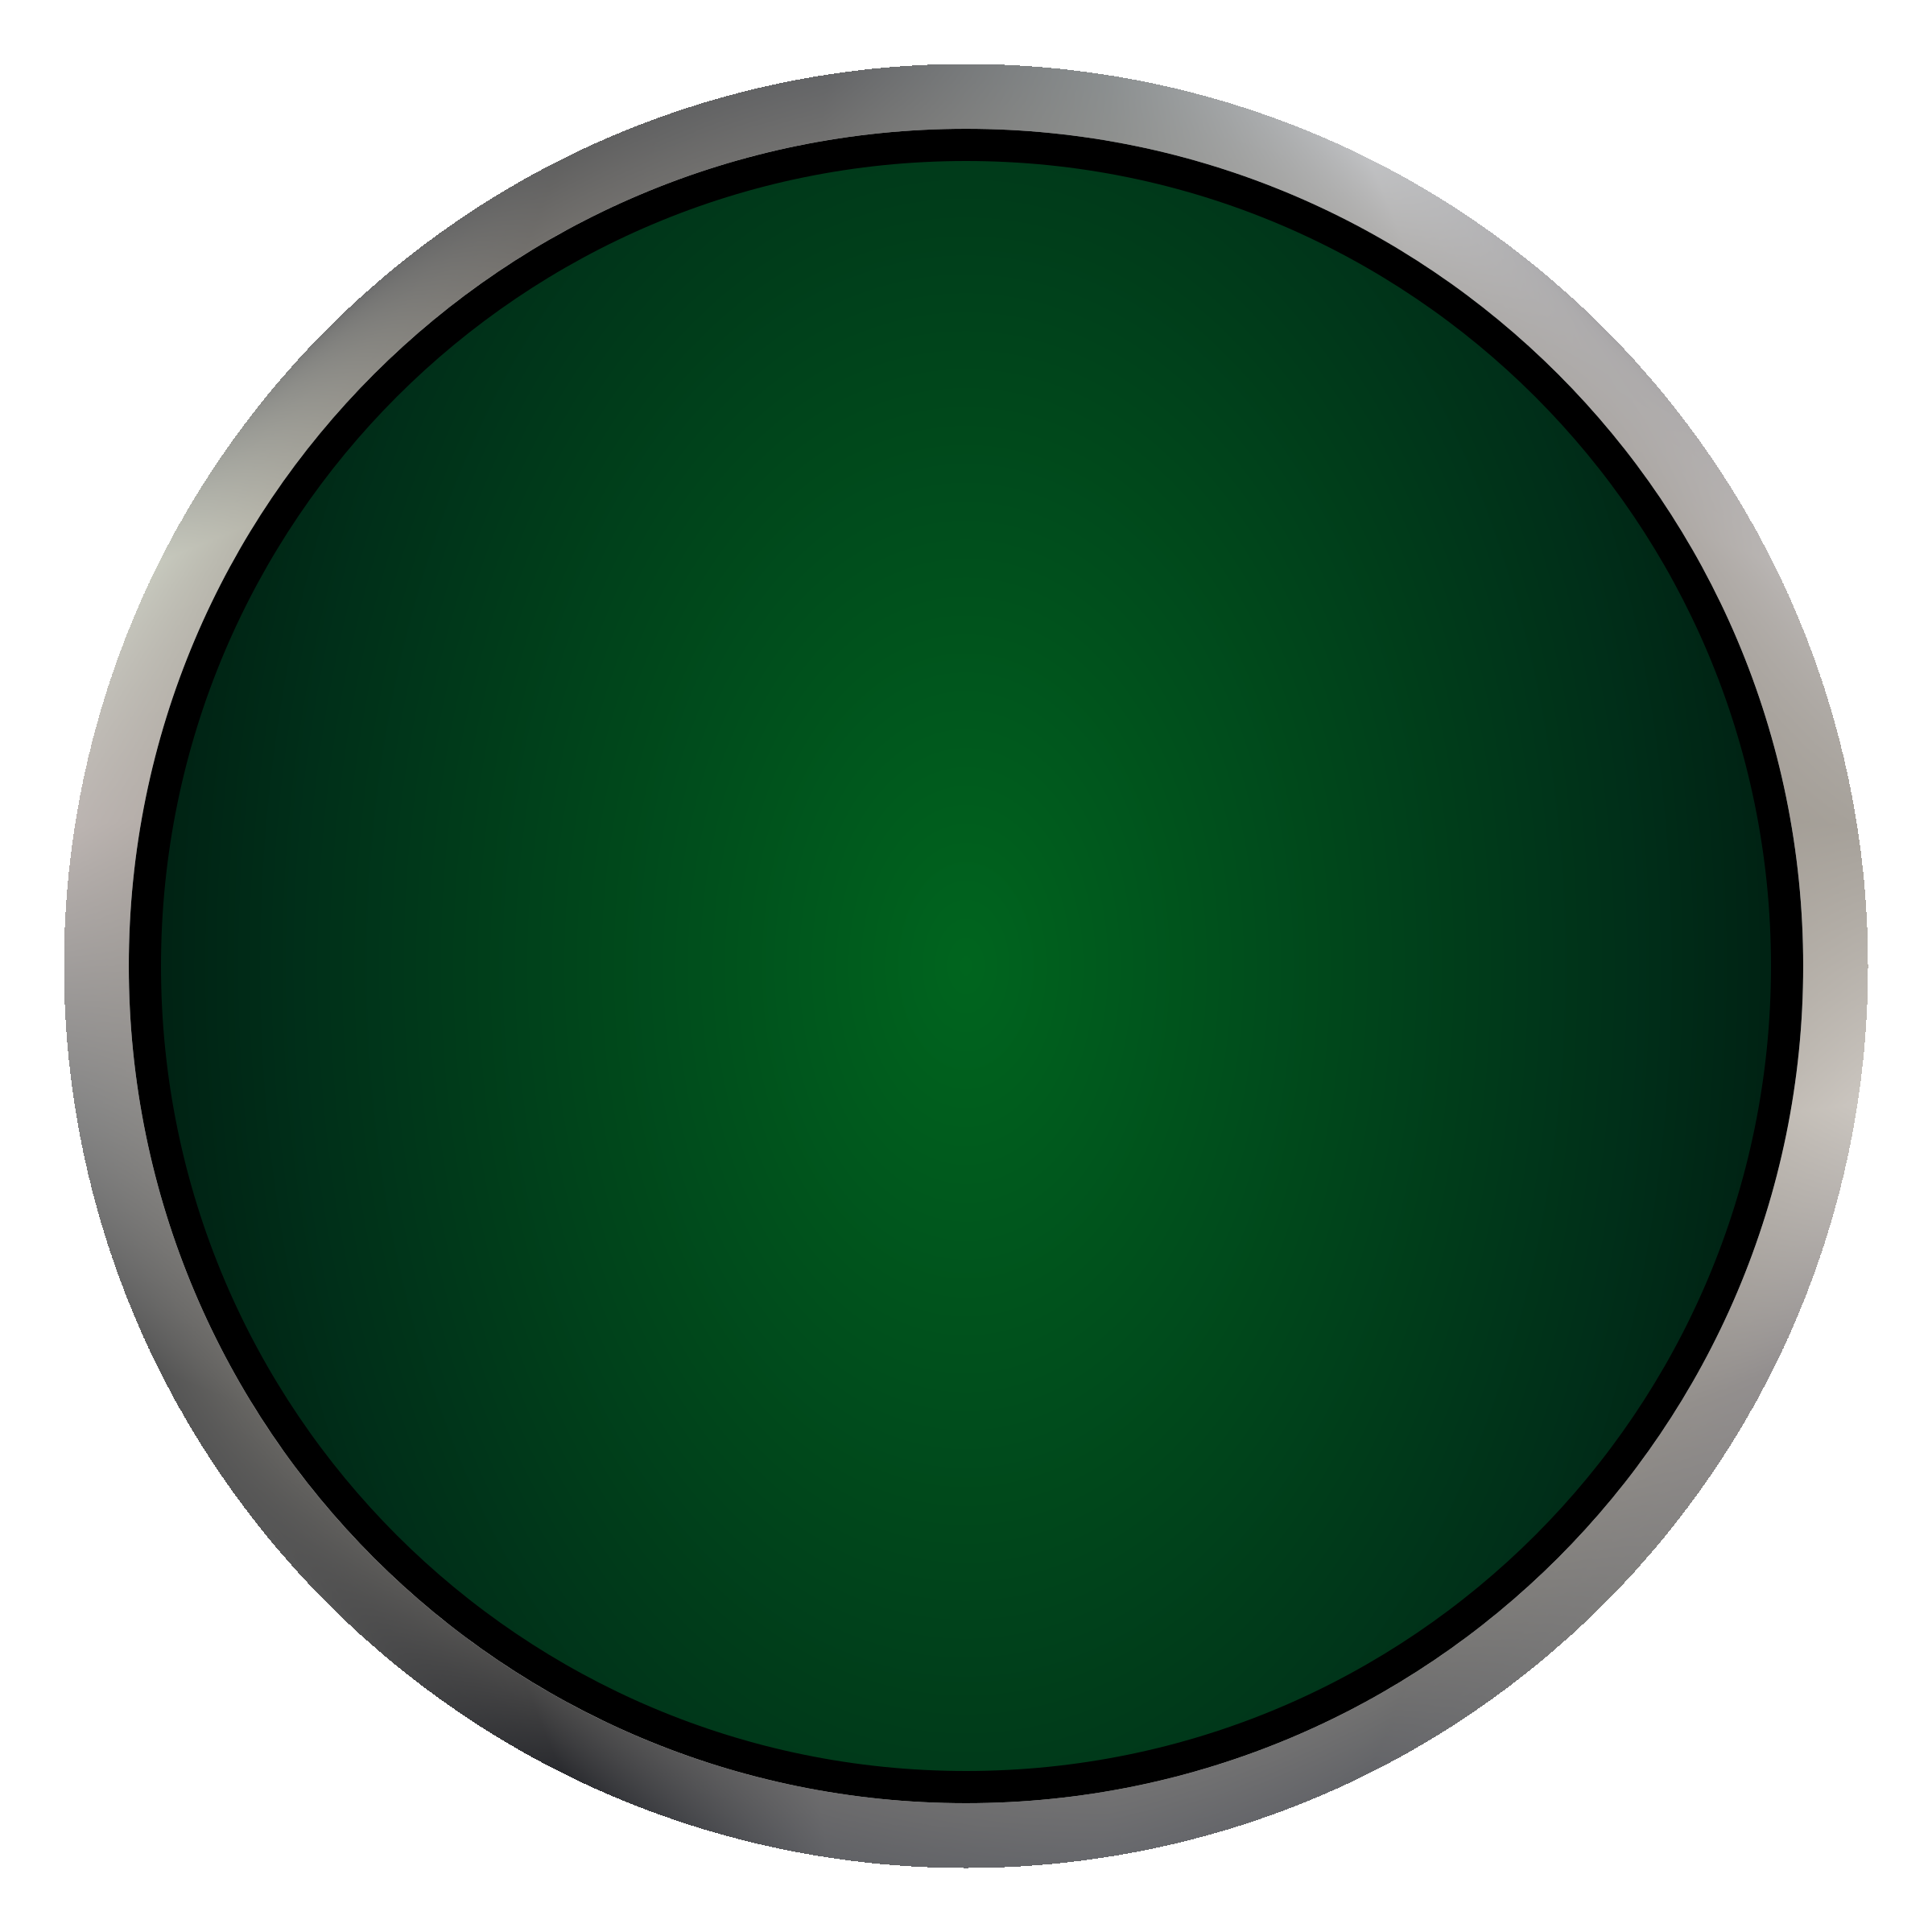 clip freeuse Push button clipart. Industrial green big image.